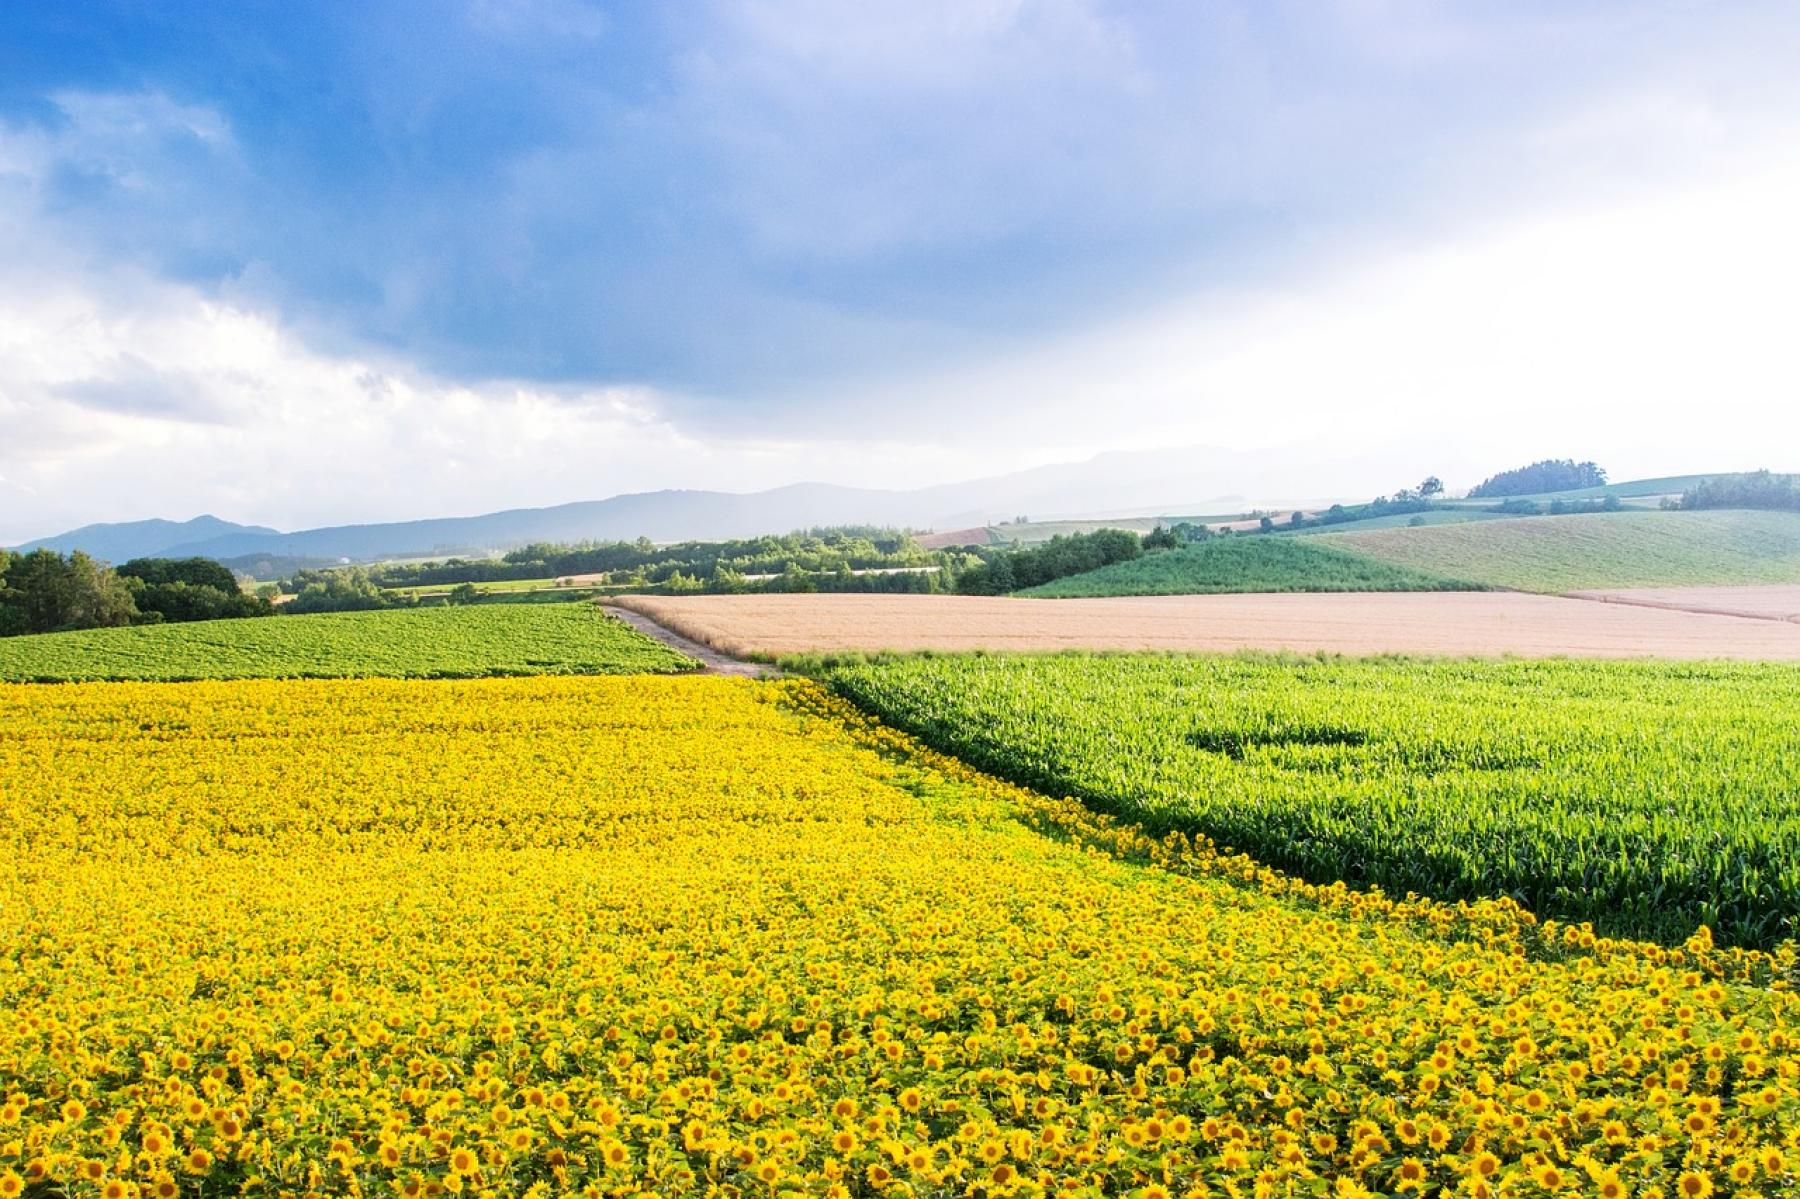 Meet the wildlife and walk the flower fields - Eastern Hokkaido starting at Sapporo, Hokkaido, Japan